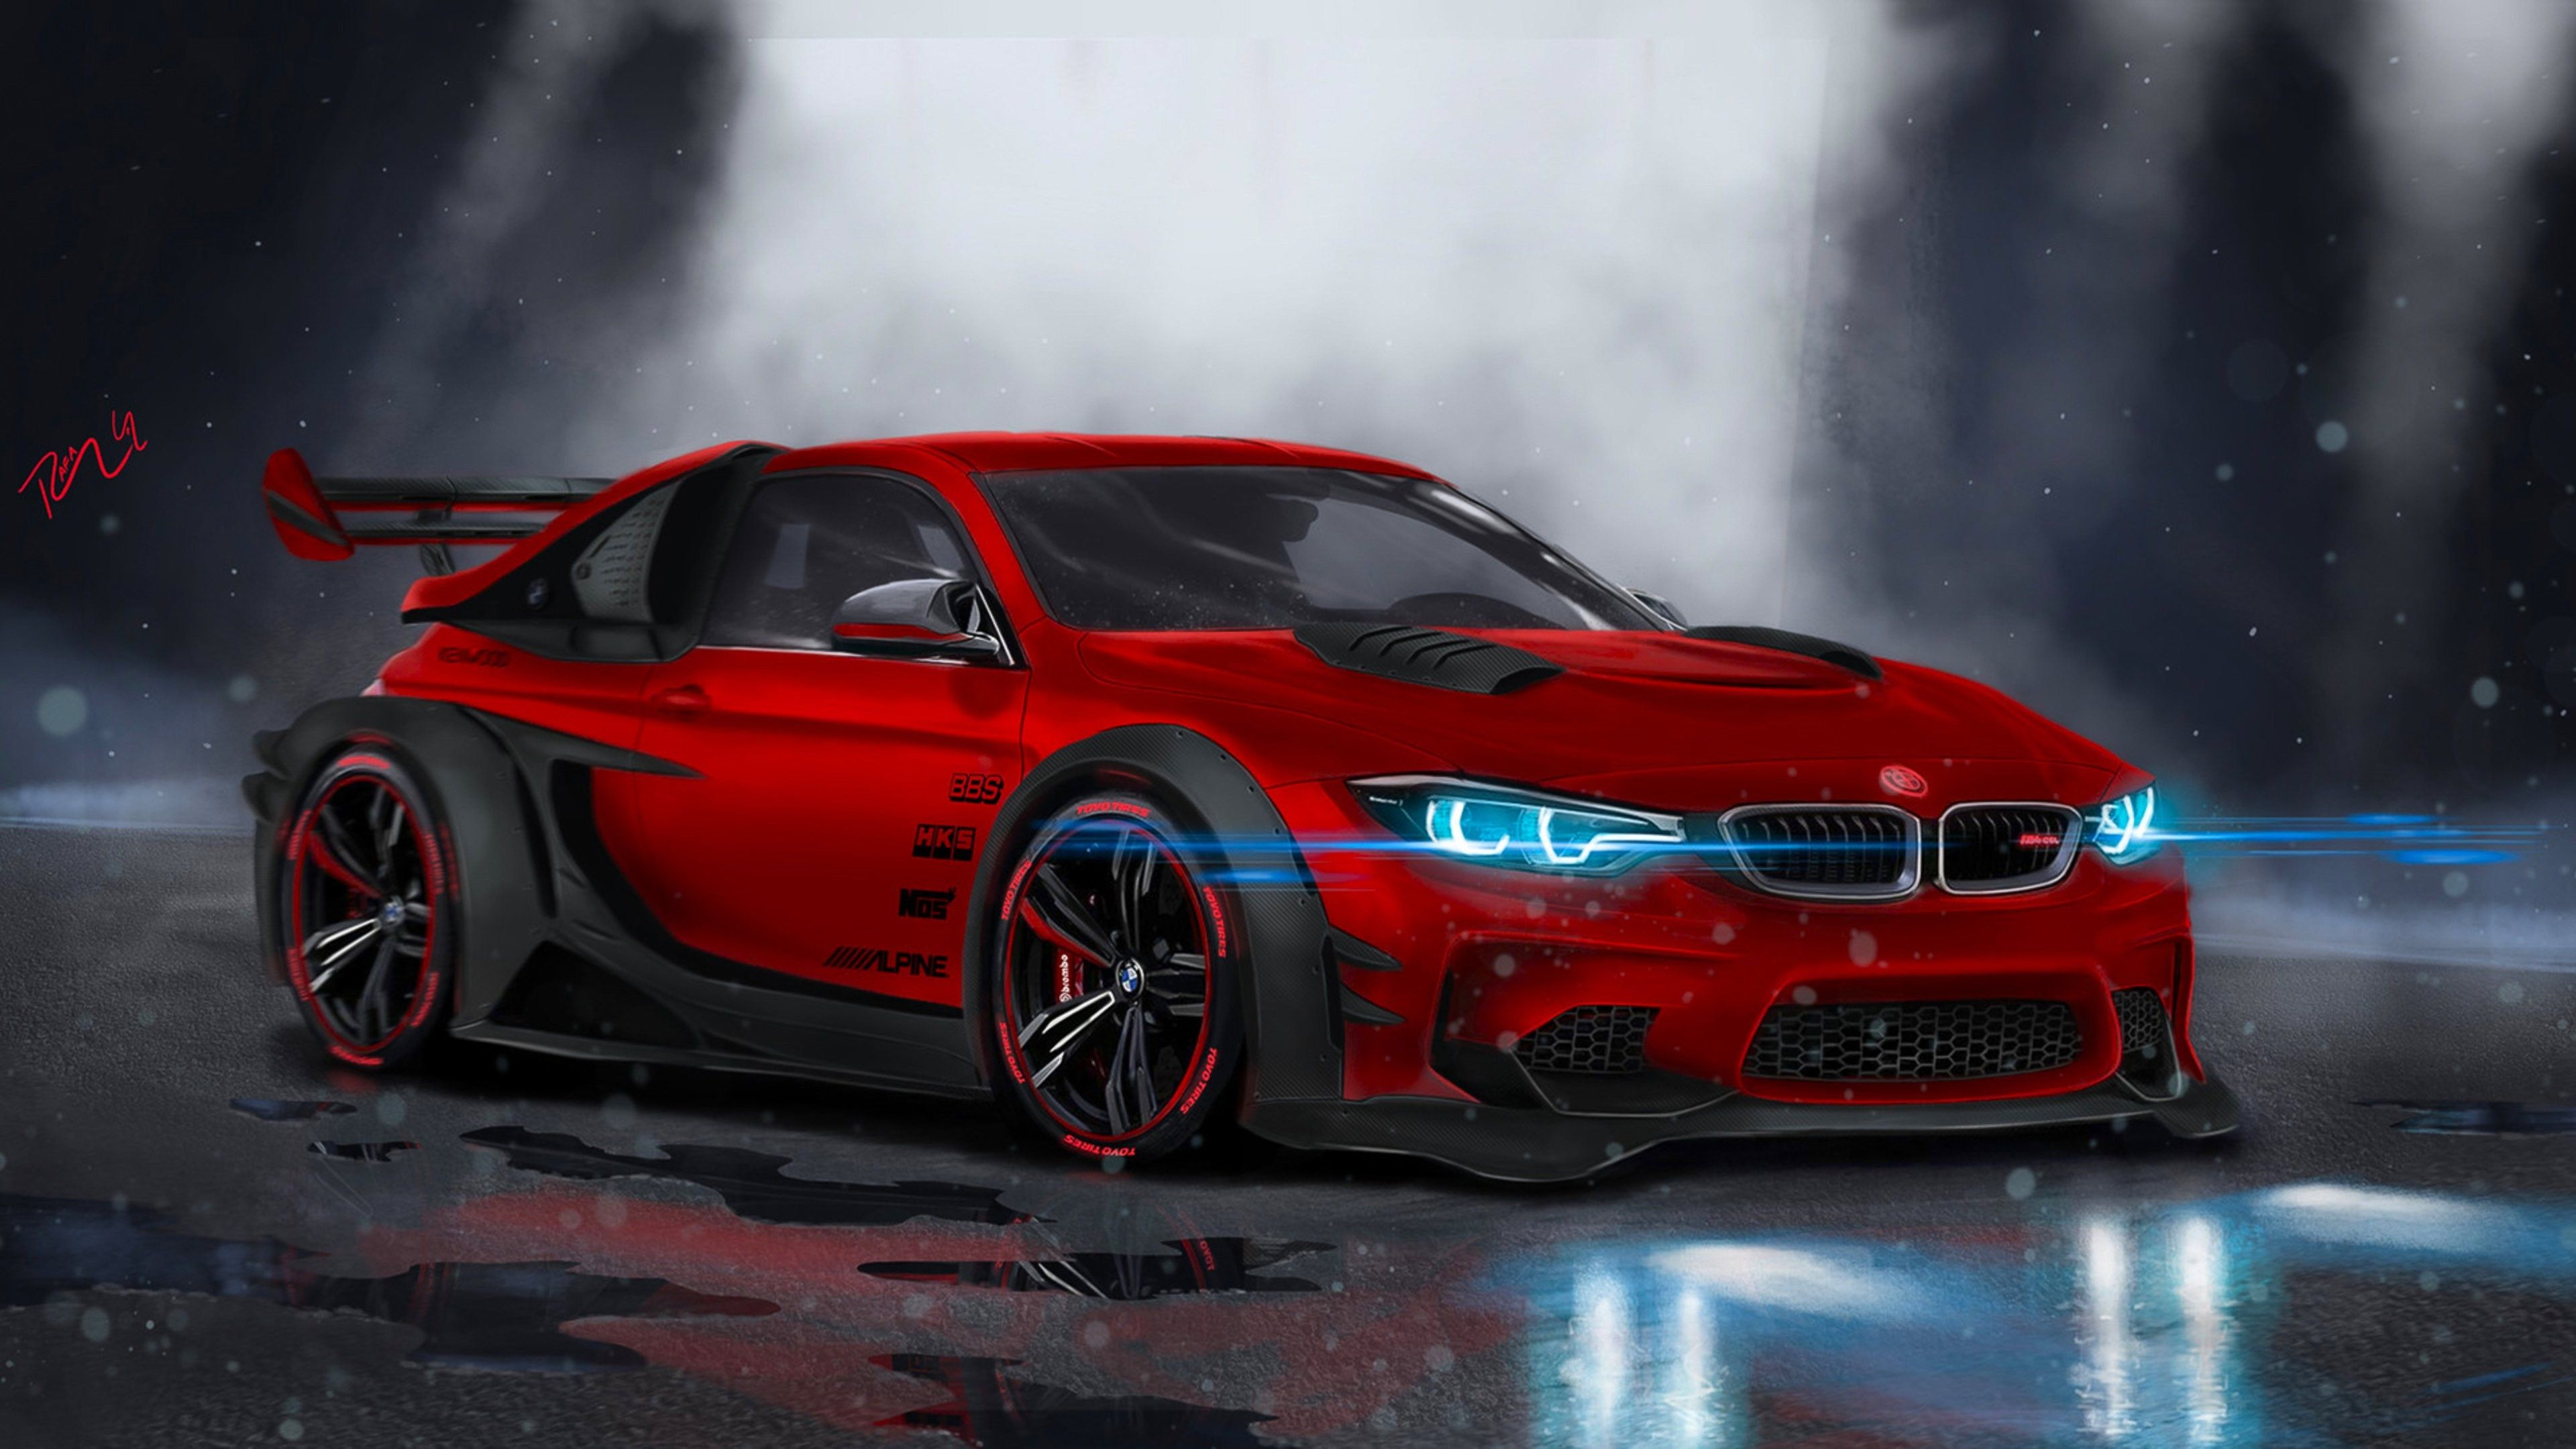 Bmw M4 Highly Modified High Definition Wallpapers Sports Car Wallpaper Bmw M4 Bmw Sport